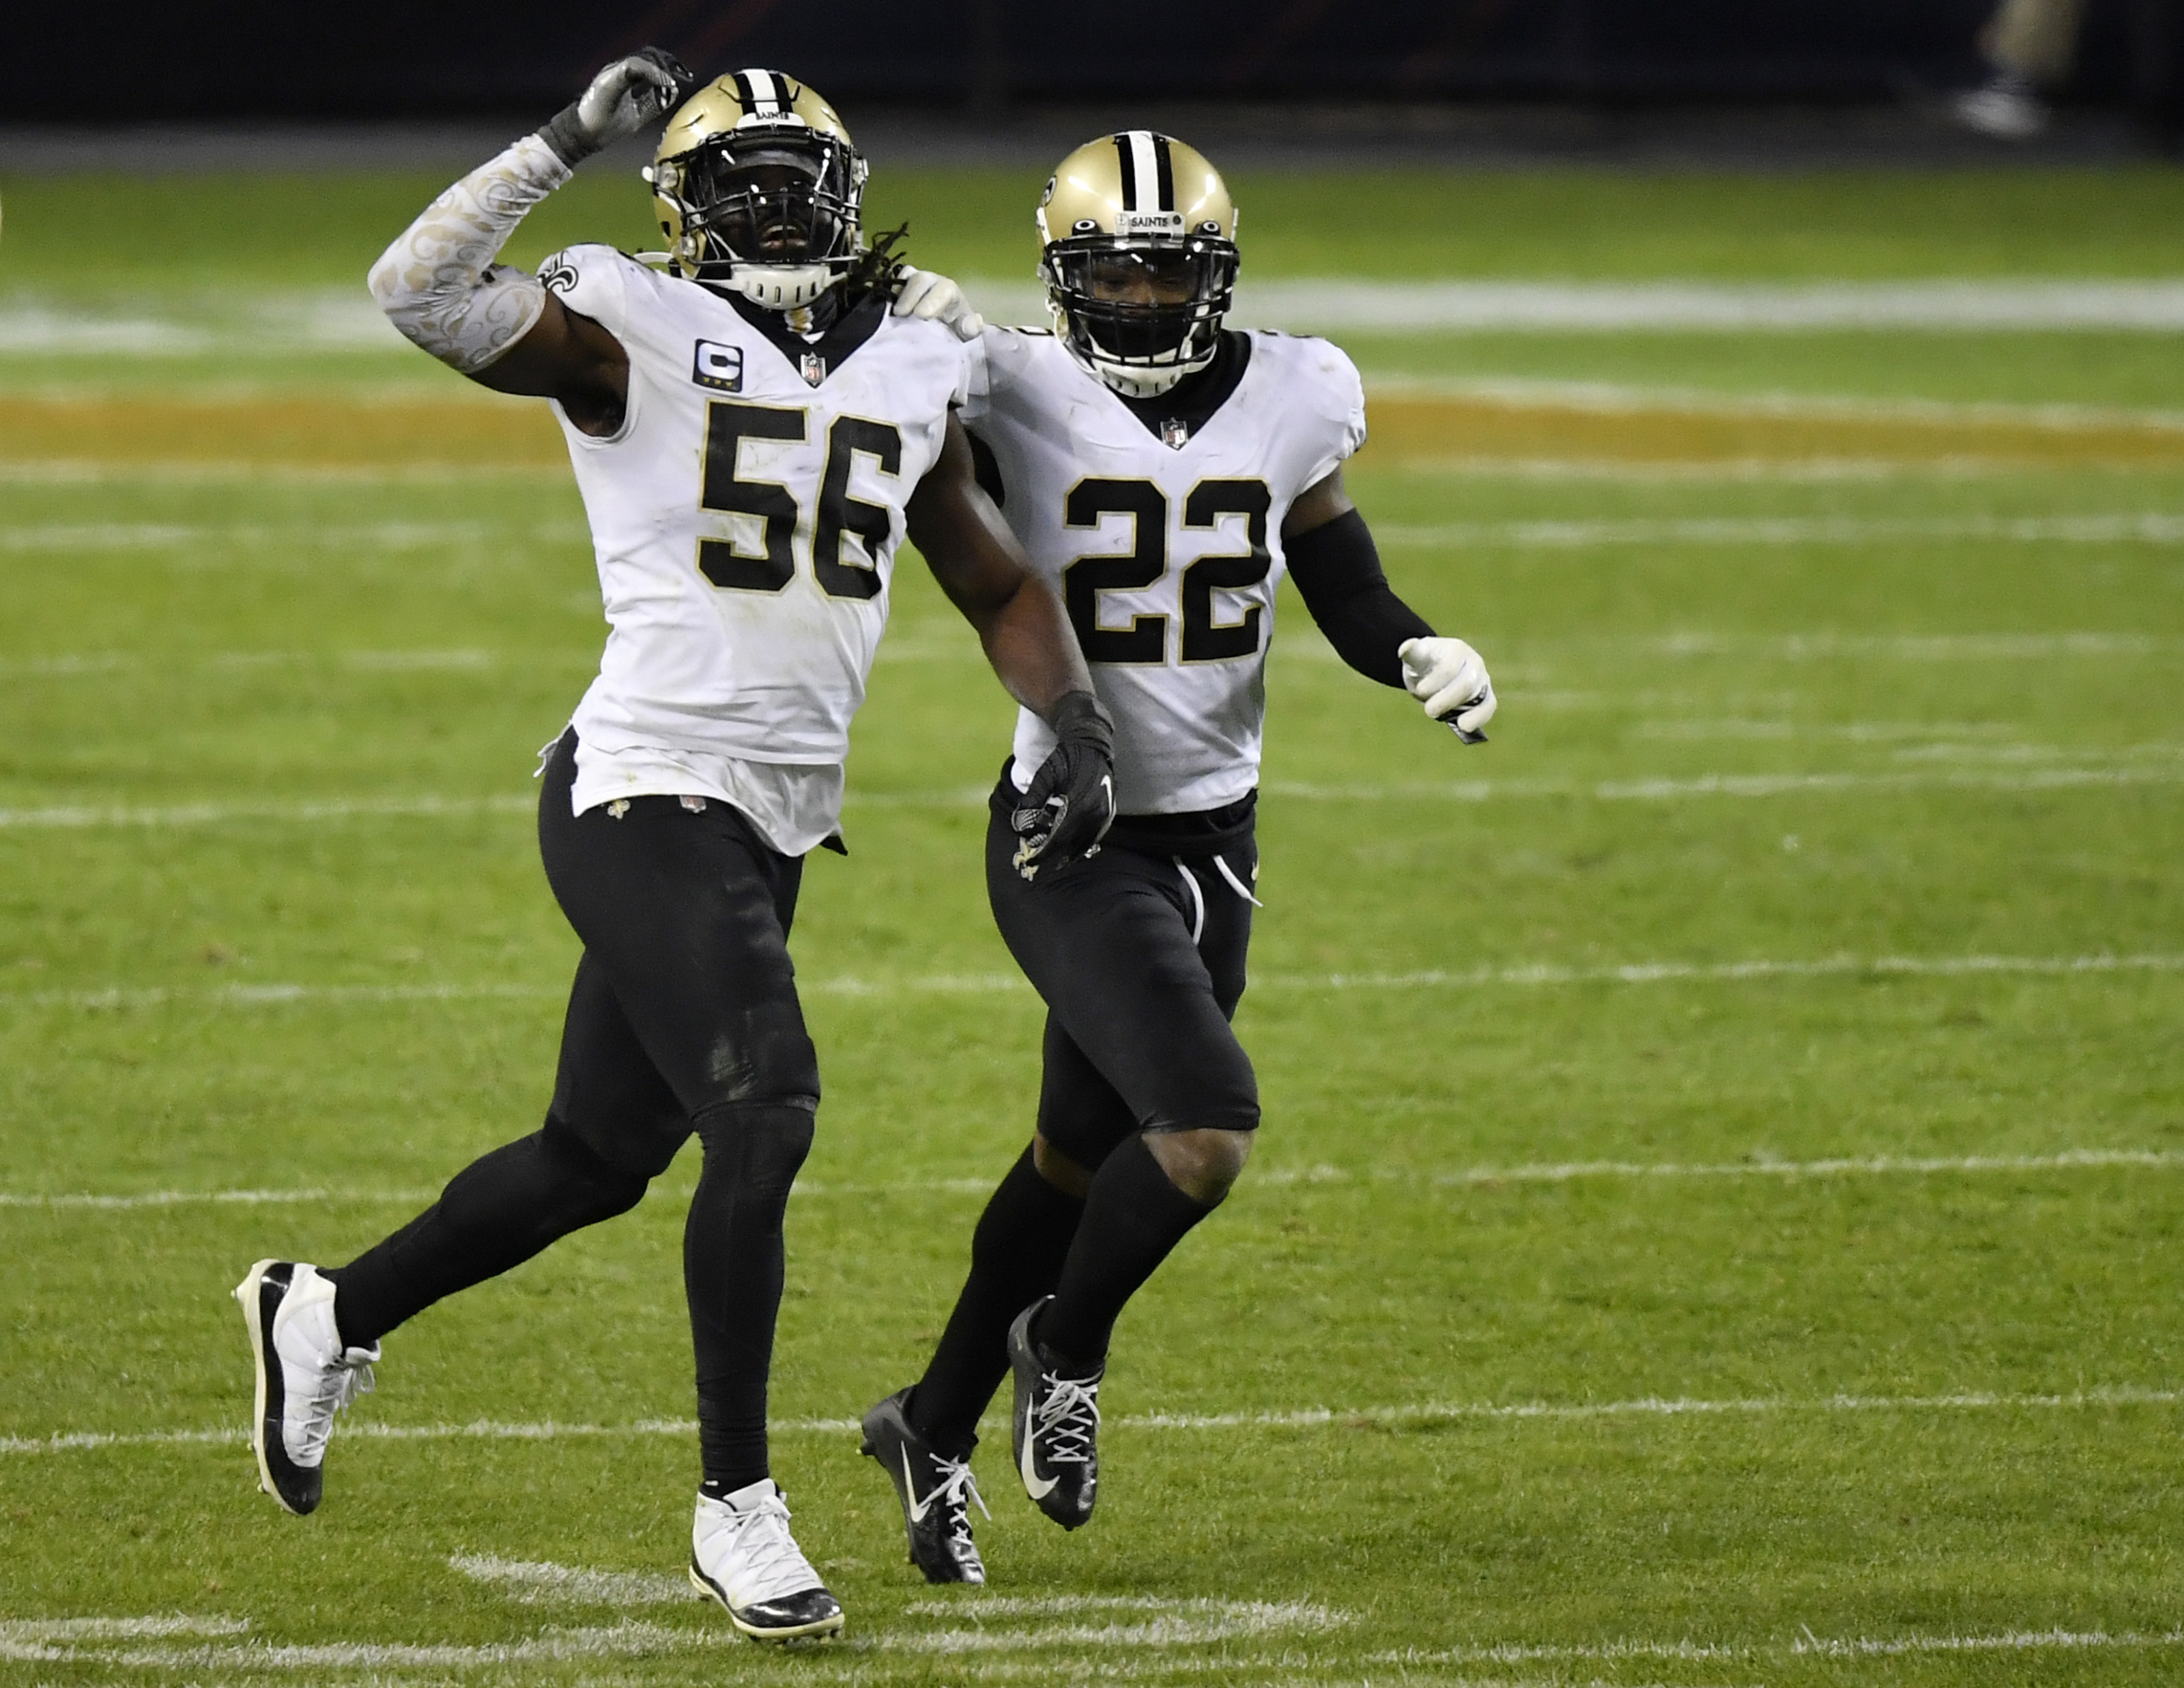 New Orleans Saints expected to have a top-10 defense in 2021